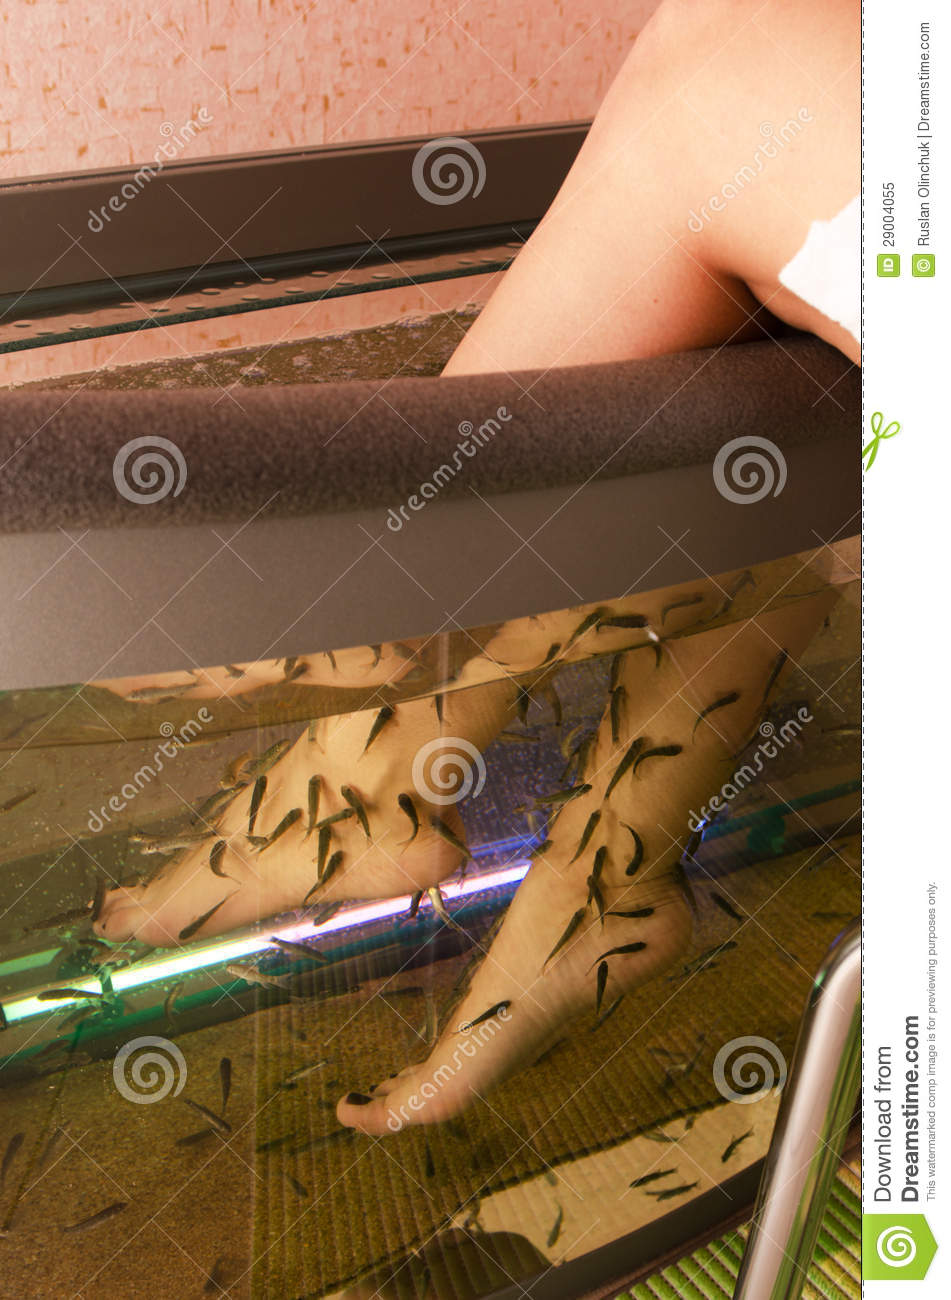 Fish spa pedicure royalty free stock photo image 29004055 for Fish spa treatment